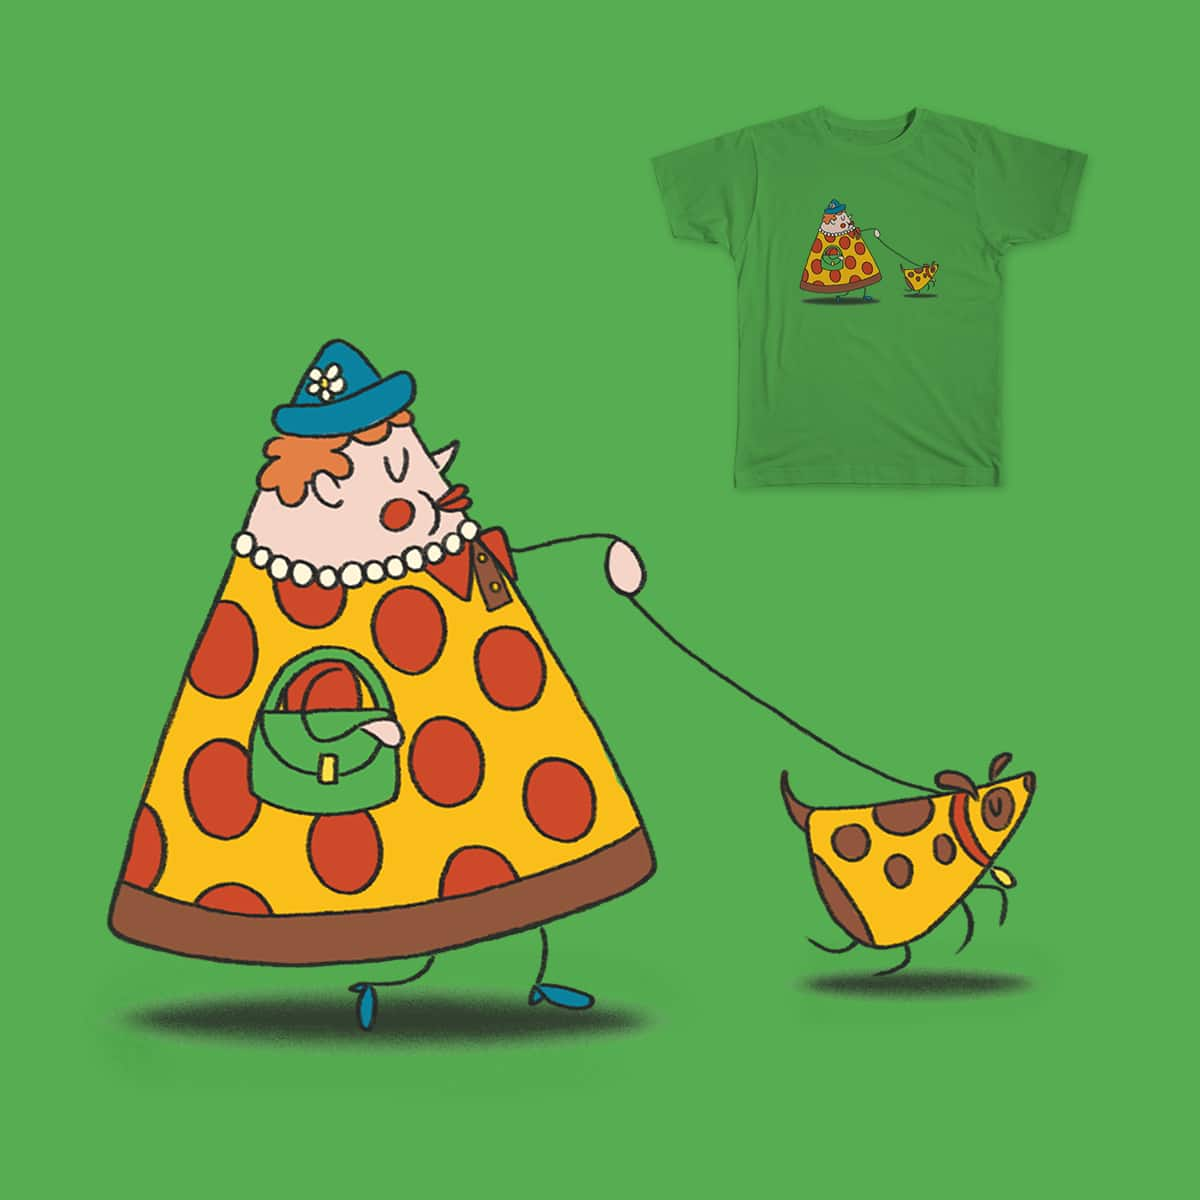 Pizza person, pizza dog by cathy-rine on Threadless